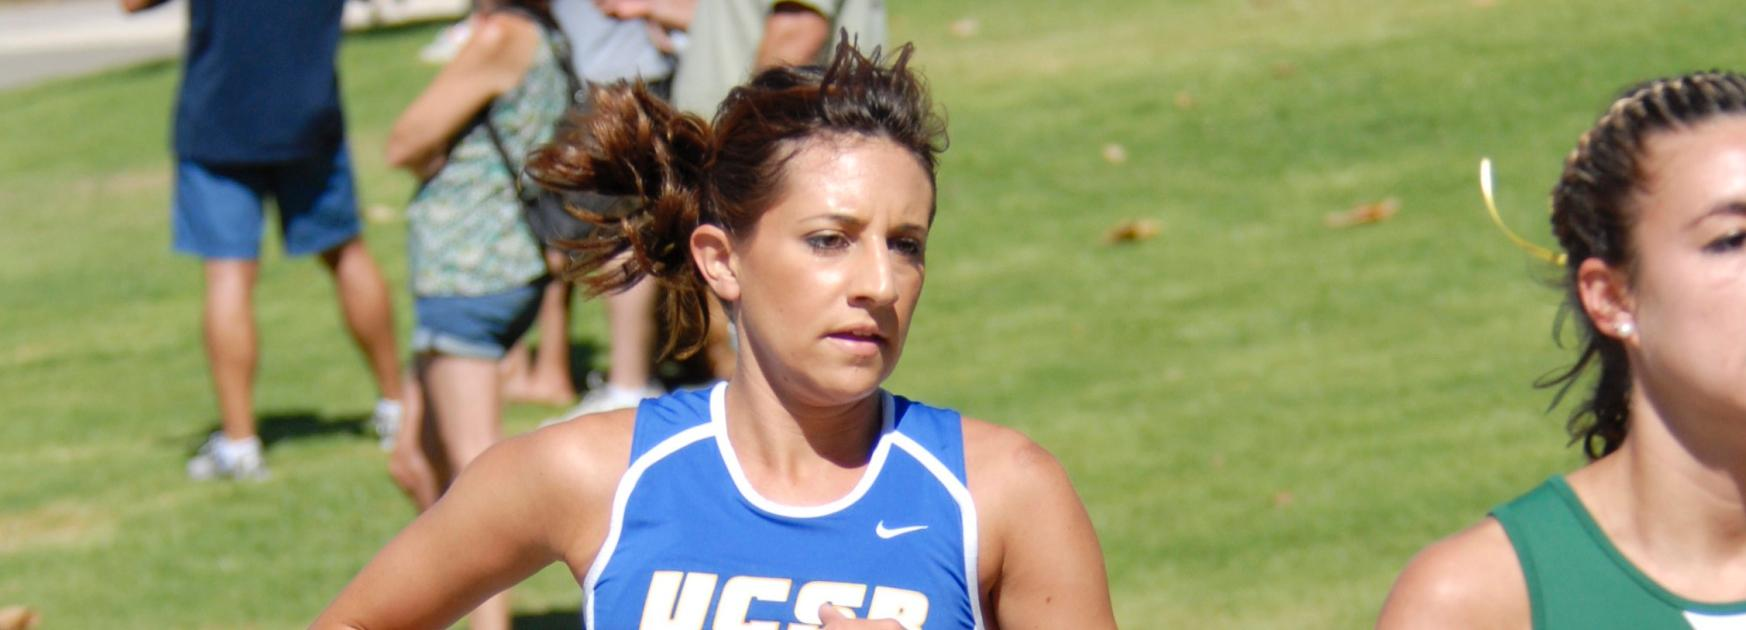 UCSB Travels South to Riverside Invitational